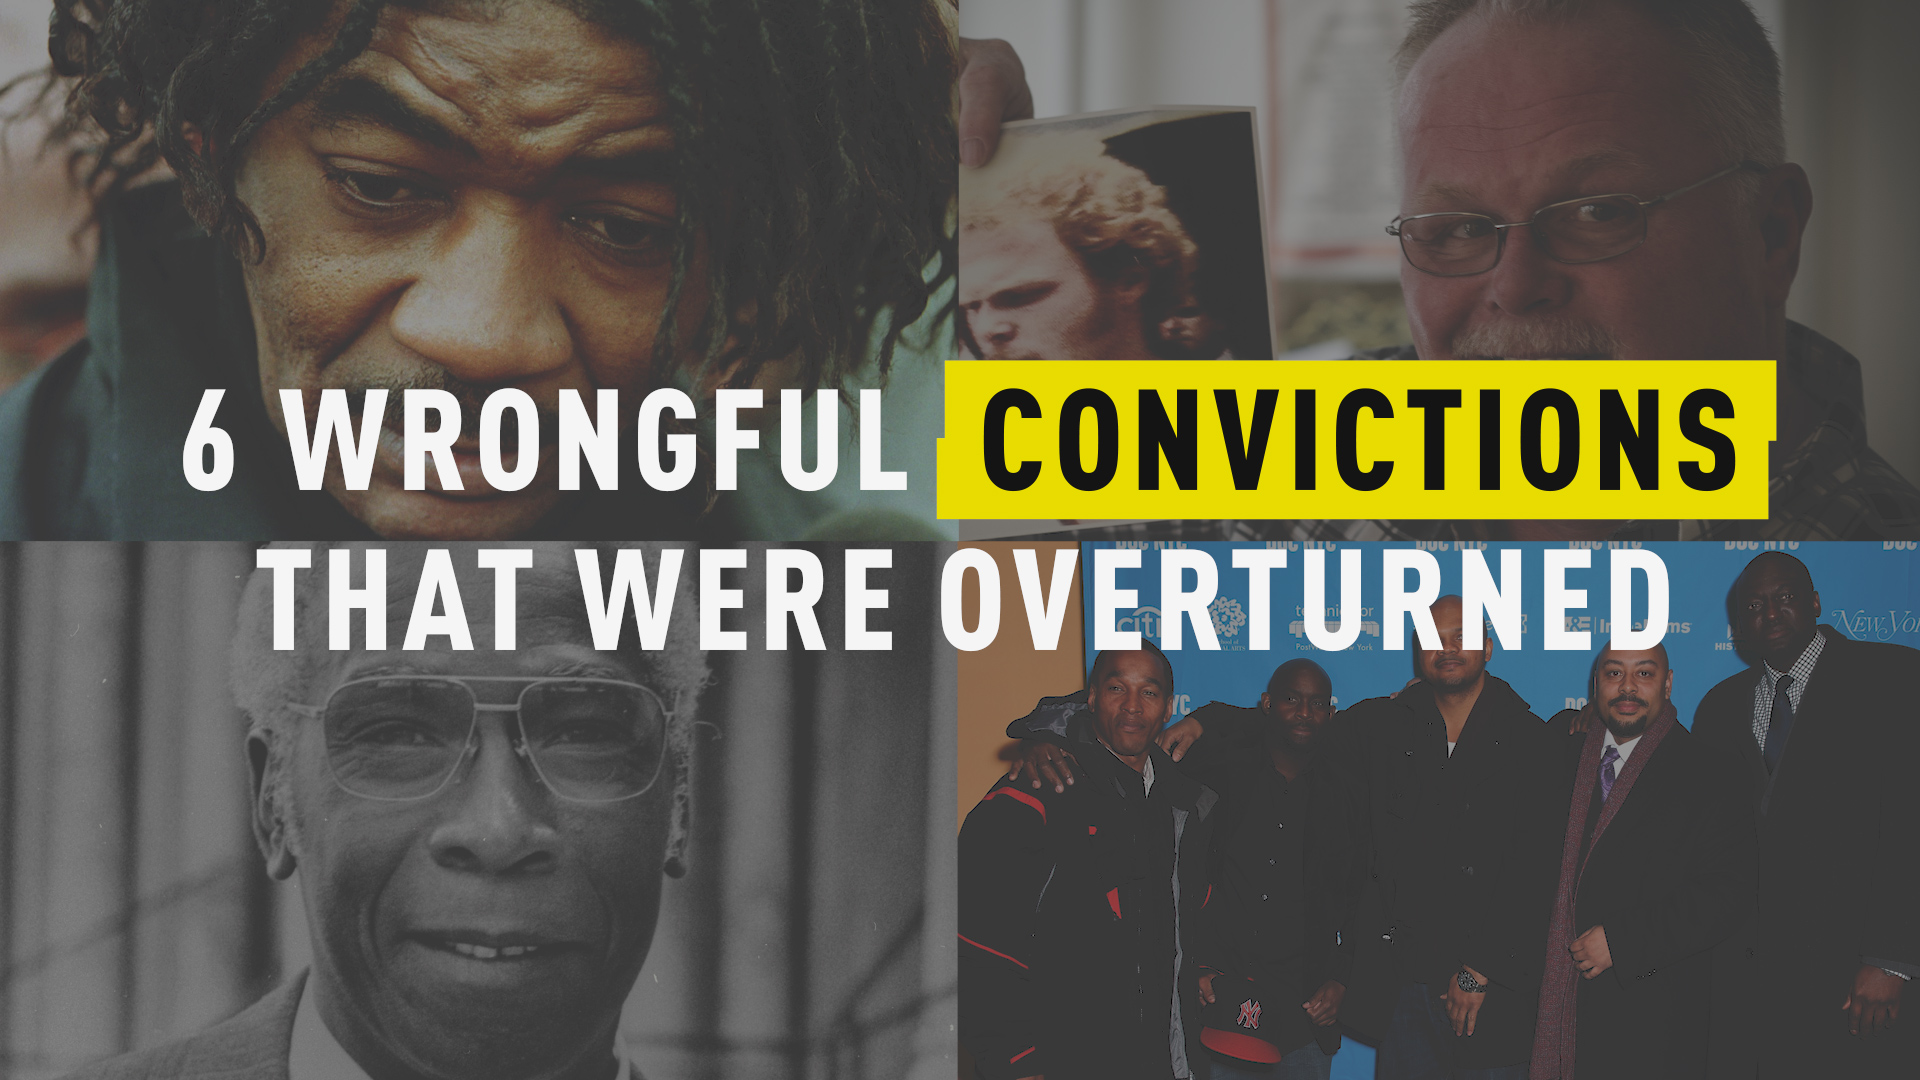 6 Wrongful Convictions That Were Overturned